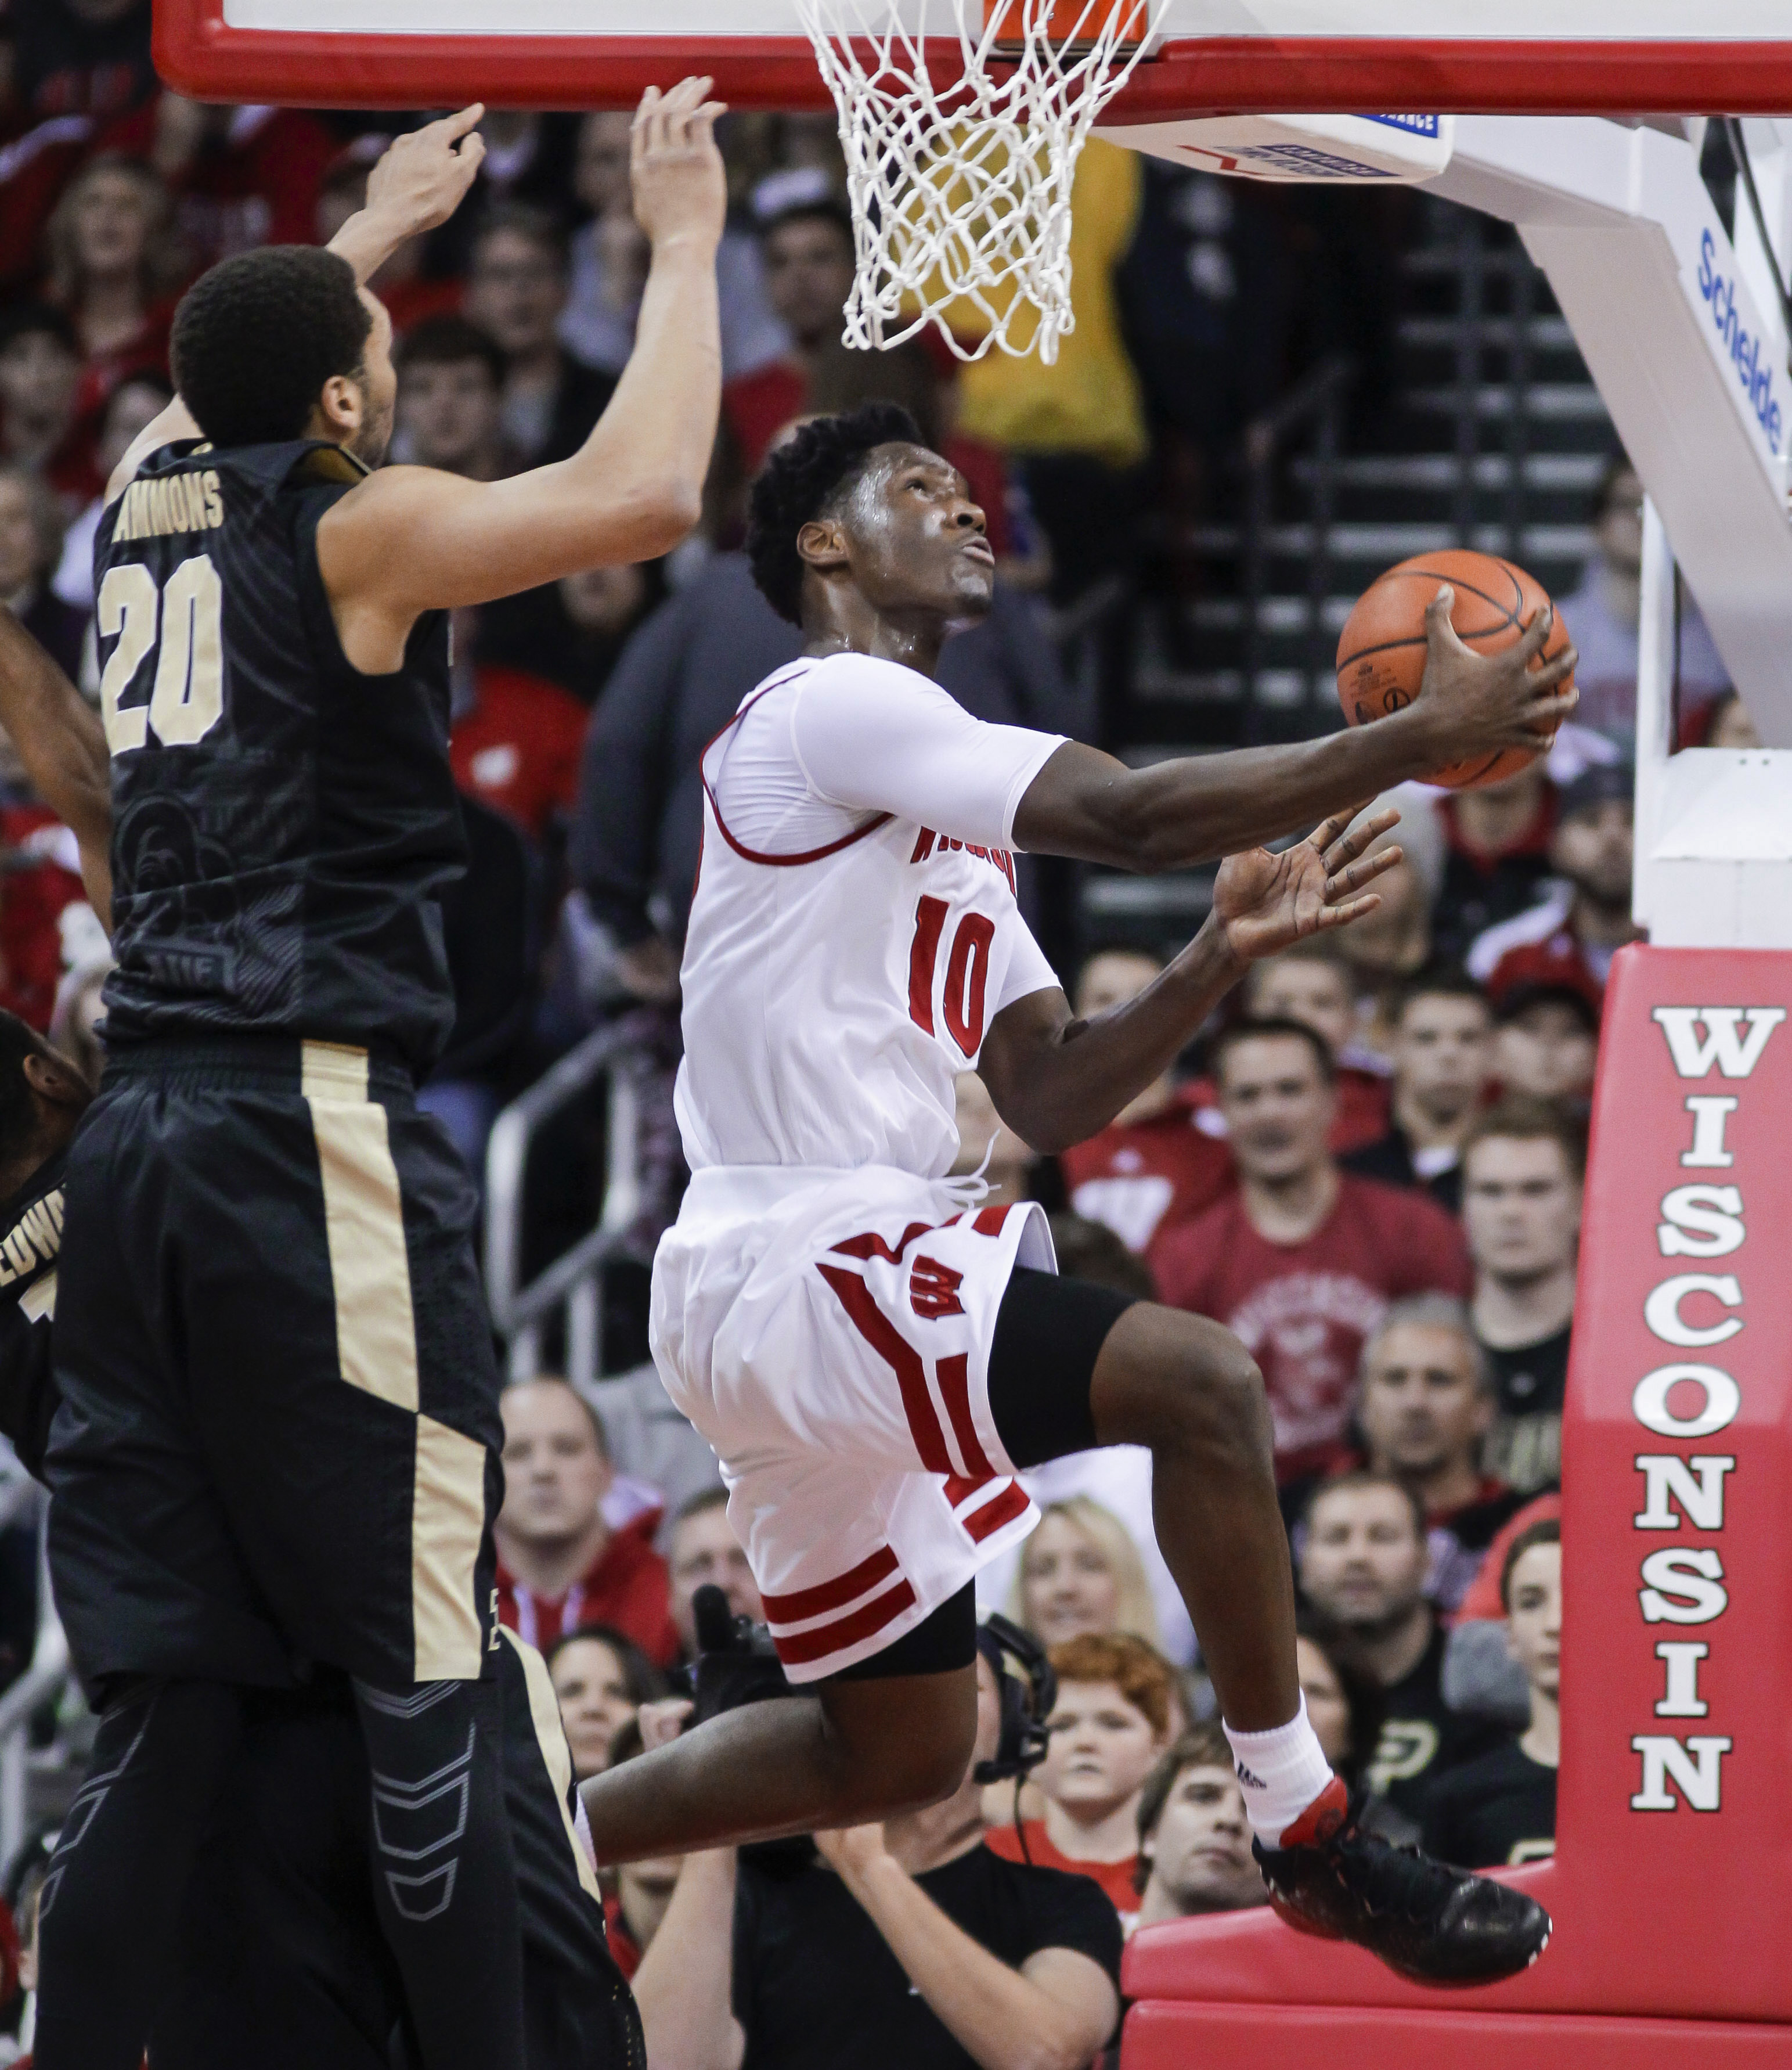 Wisconsin's Nigel Hayes (10) shoots against Purdue's A.J. Hammons (20) during the first half of an NCAA college basketball game Tuesday, Dec. 29, 2015, in Madison, Wis. (AP Photo/Andy Manis)